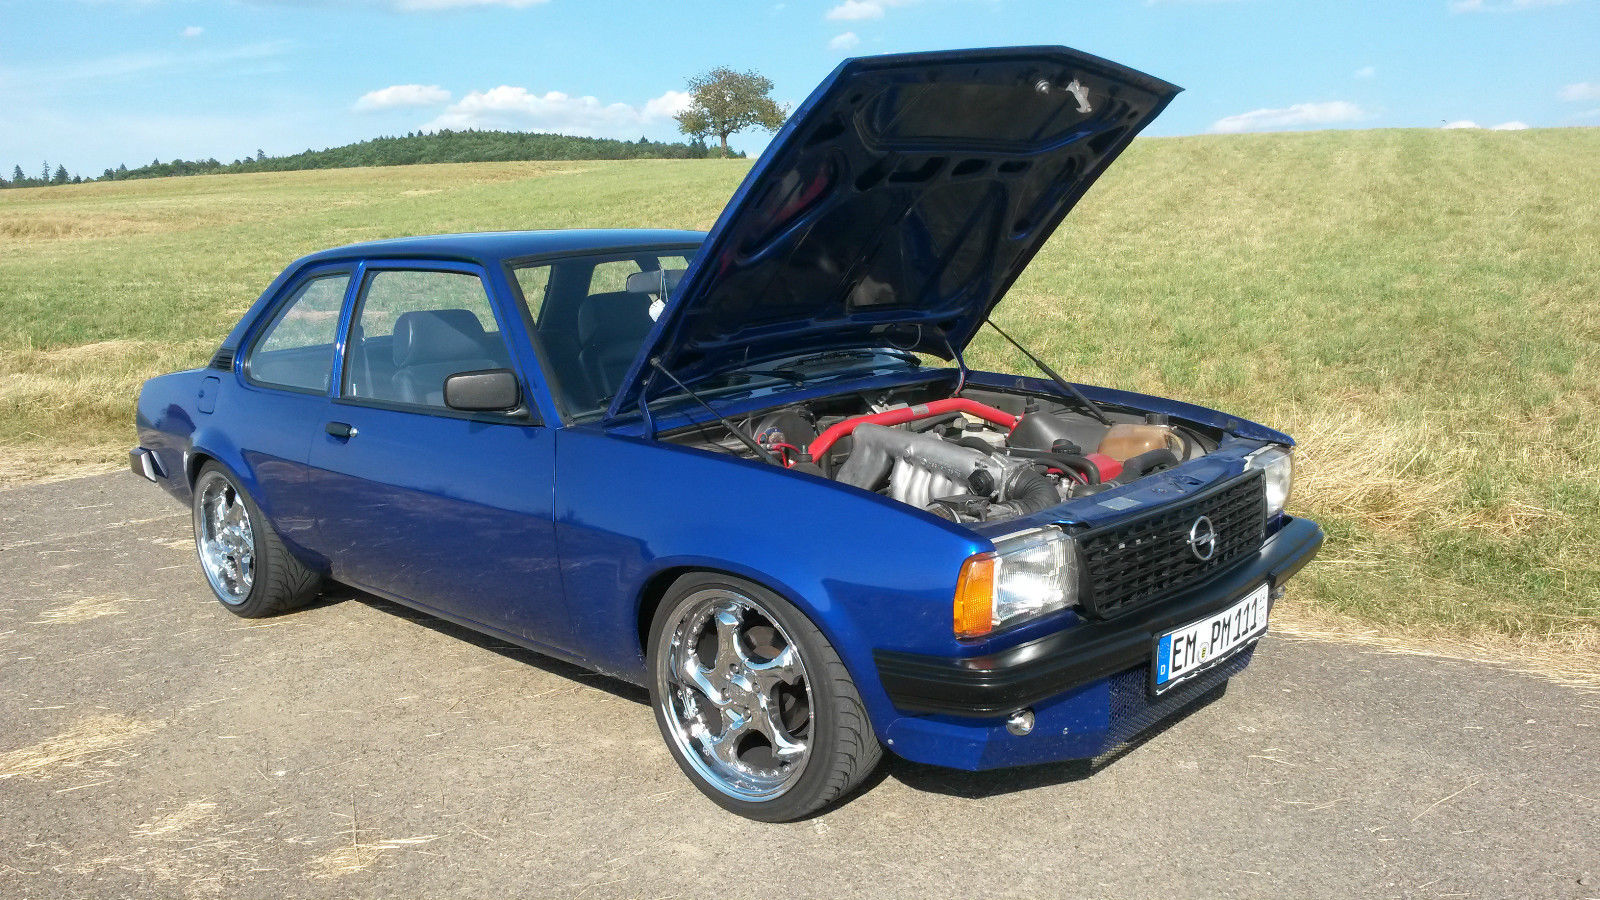 Opel Ascona B 3 0 Tuning For Sale